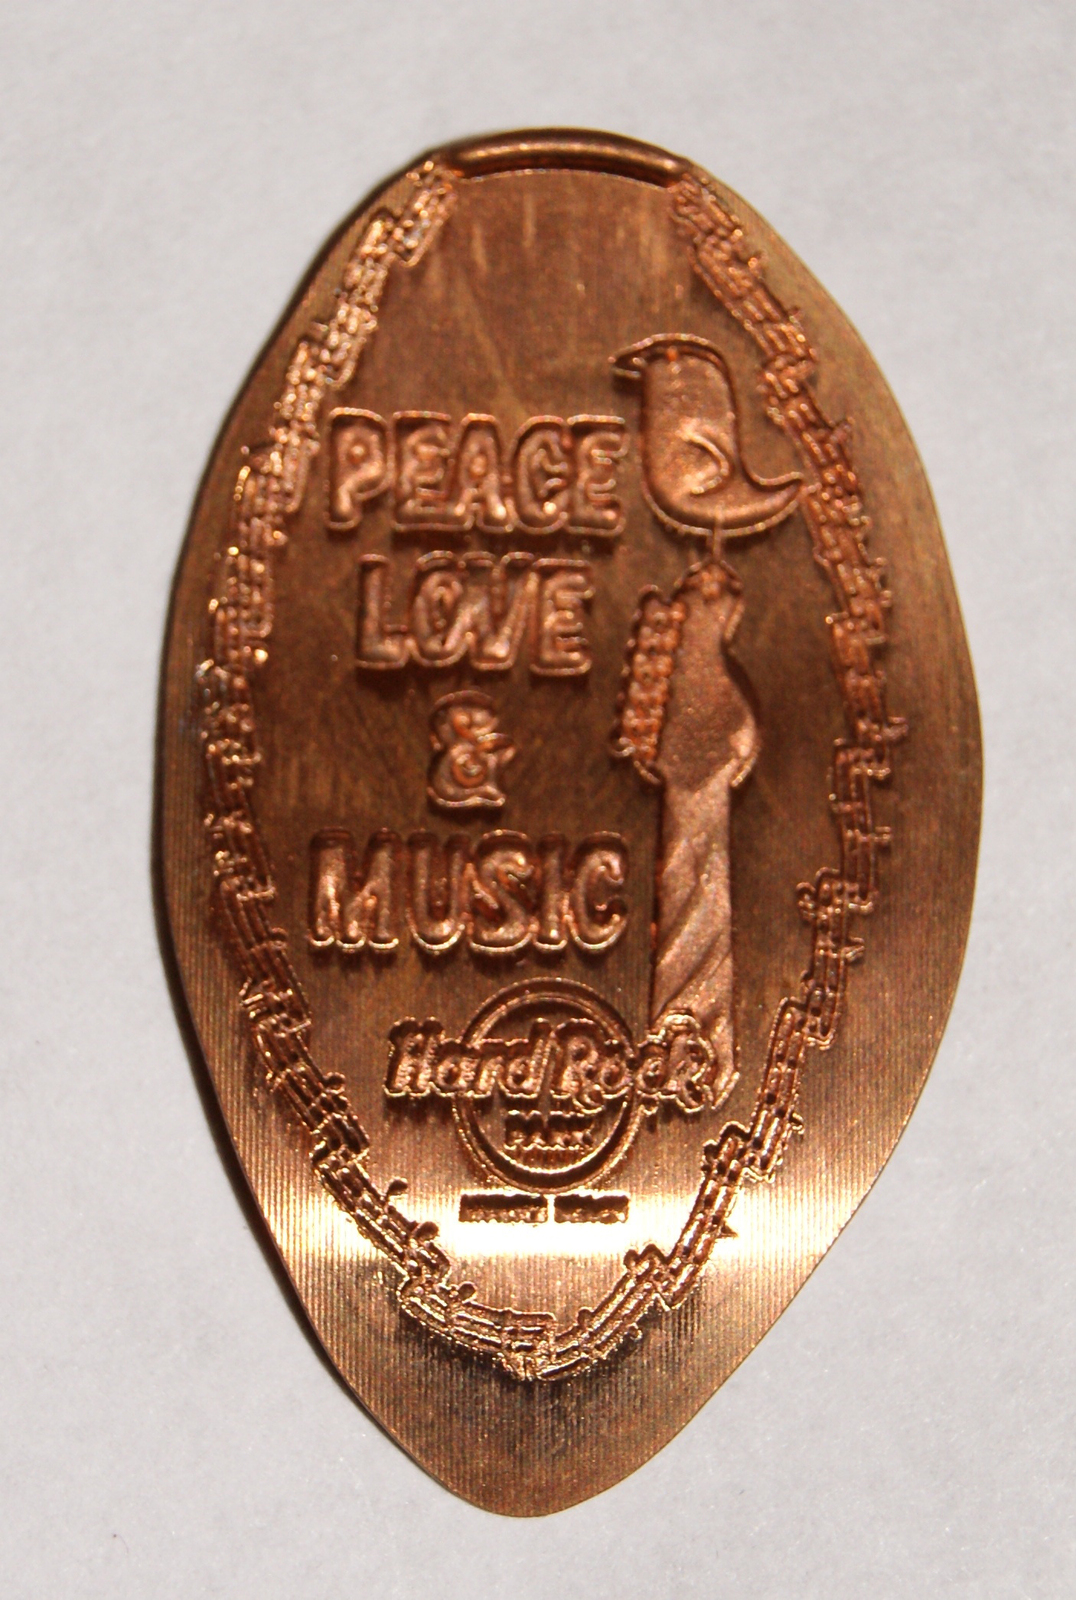 elongated penny hard rock park closed 2008 peace love music for collectors other. Black Bedroom Furniture Sets. Home Design Ideas